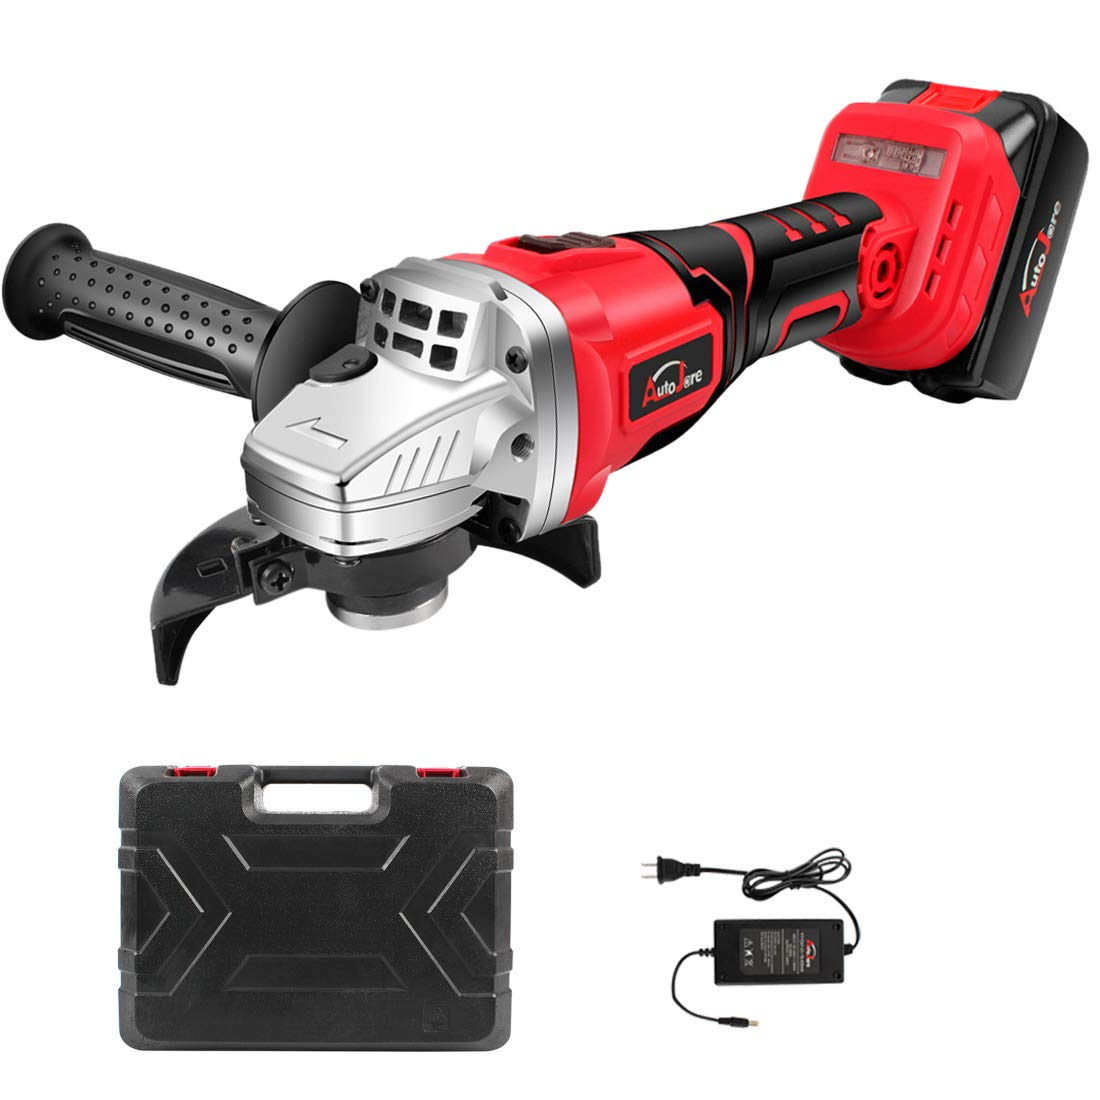 4-1/2 Inch Cordless Angle Grinder - AUTOJARE 20V Max/18V Rechargeable Lithium-Ion Battery Angle Grinder,8700rpm Max Speed, Brushless Motor, Carrying Case